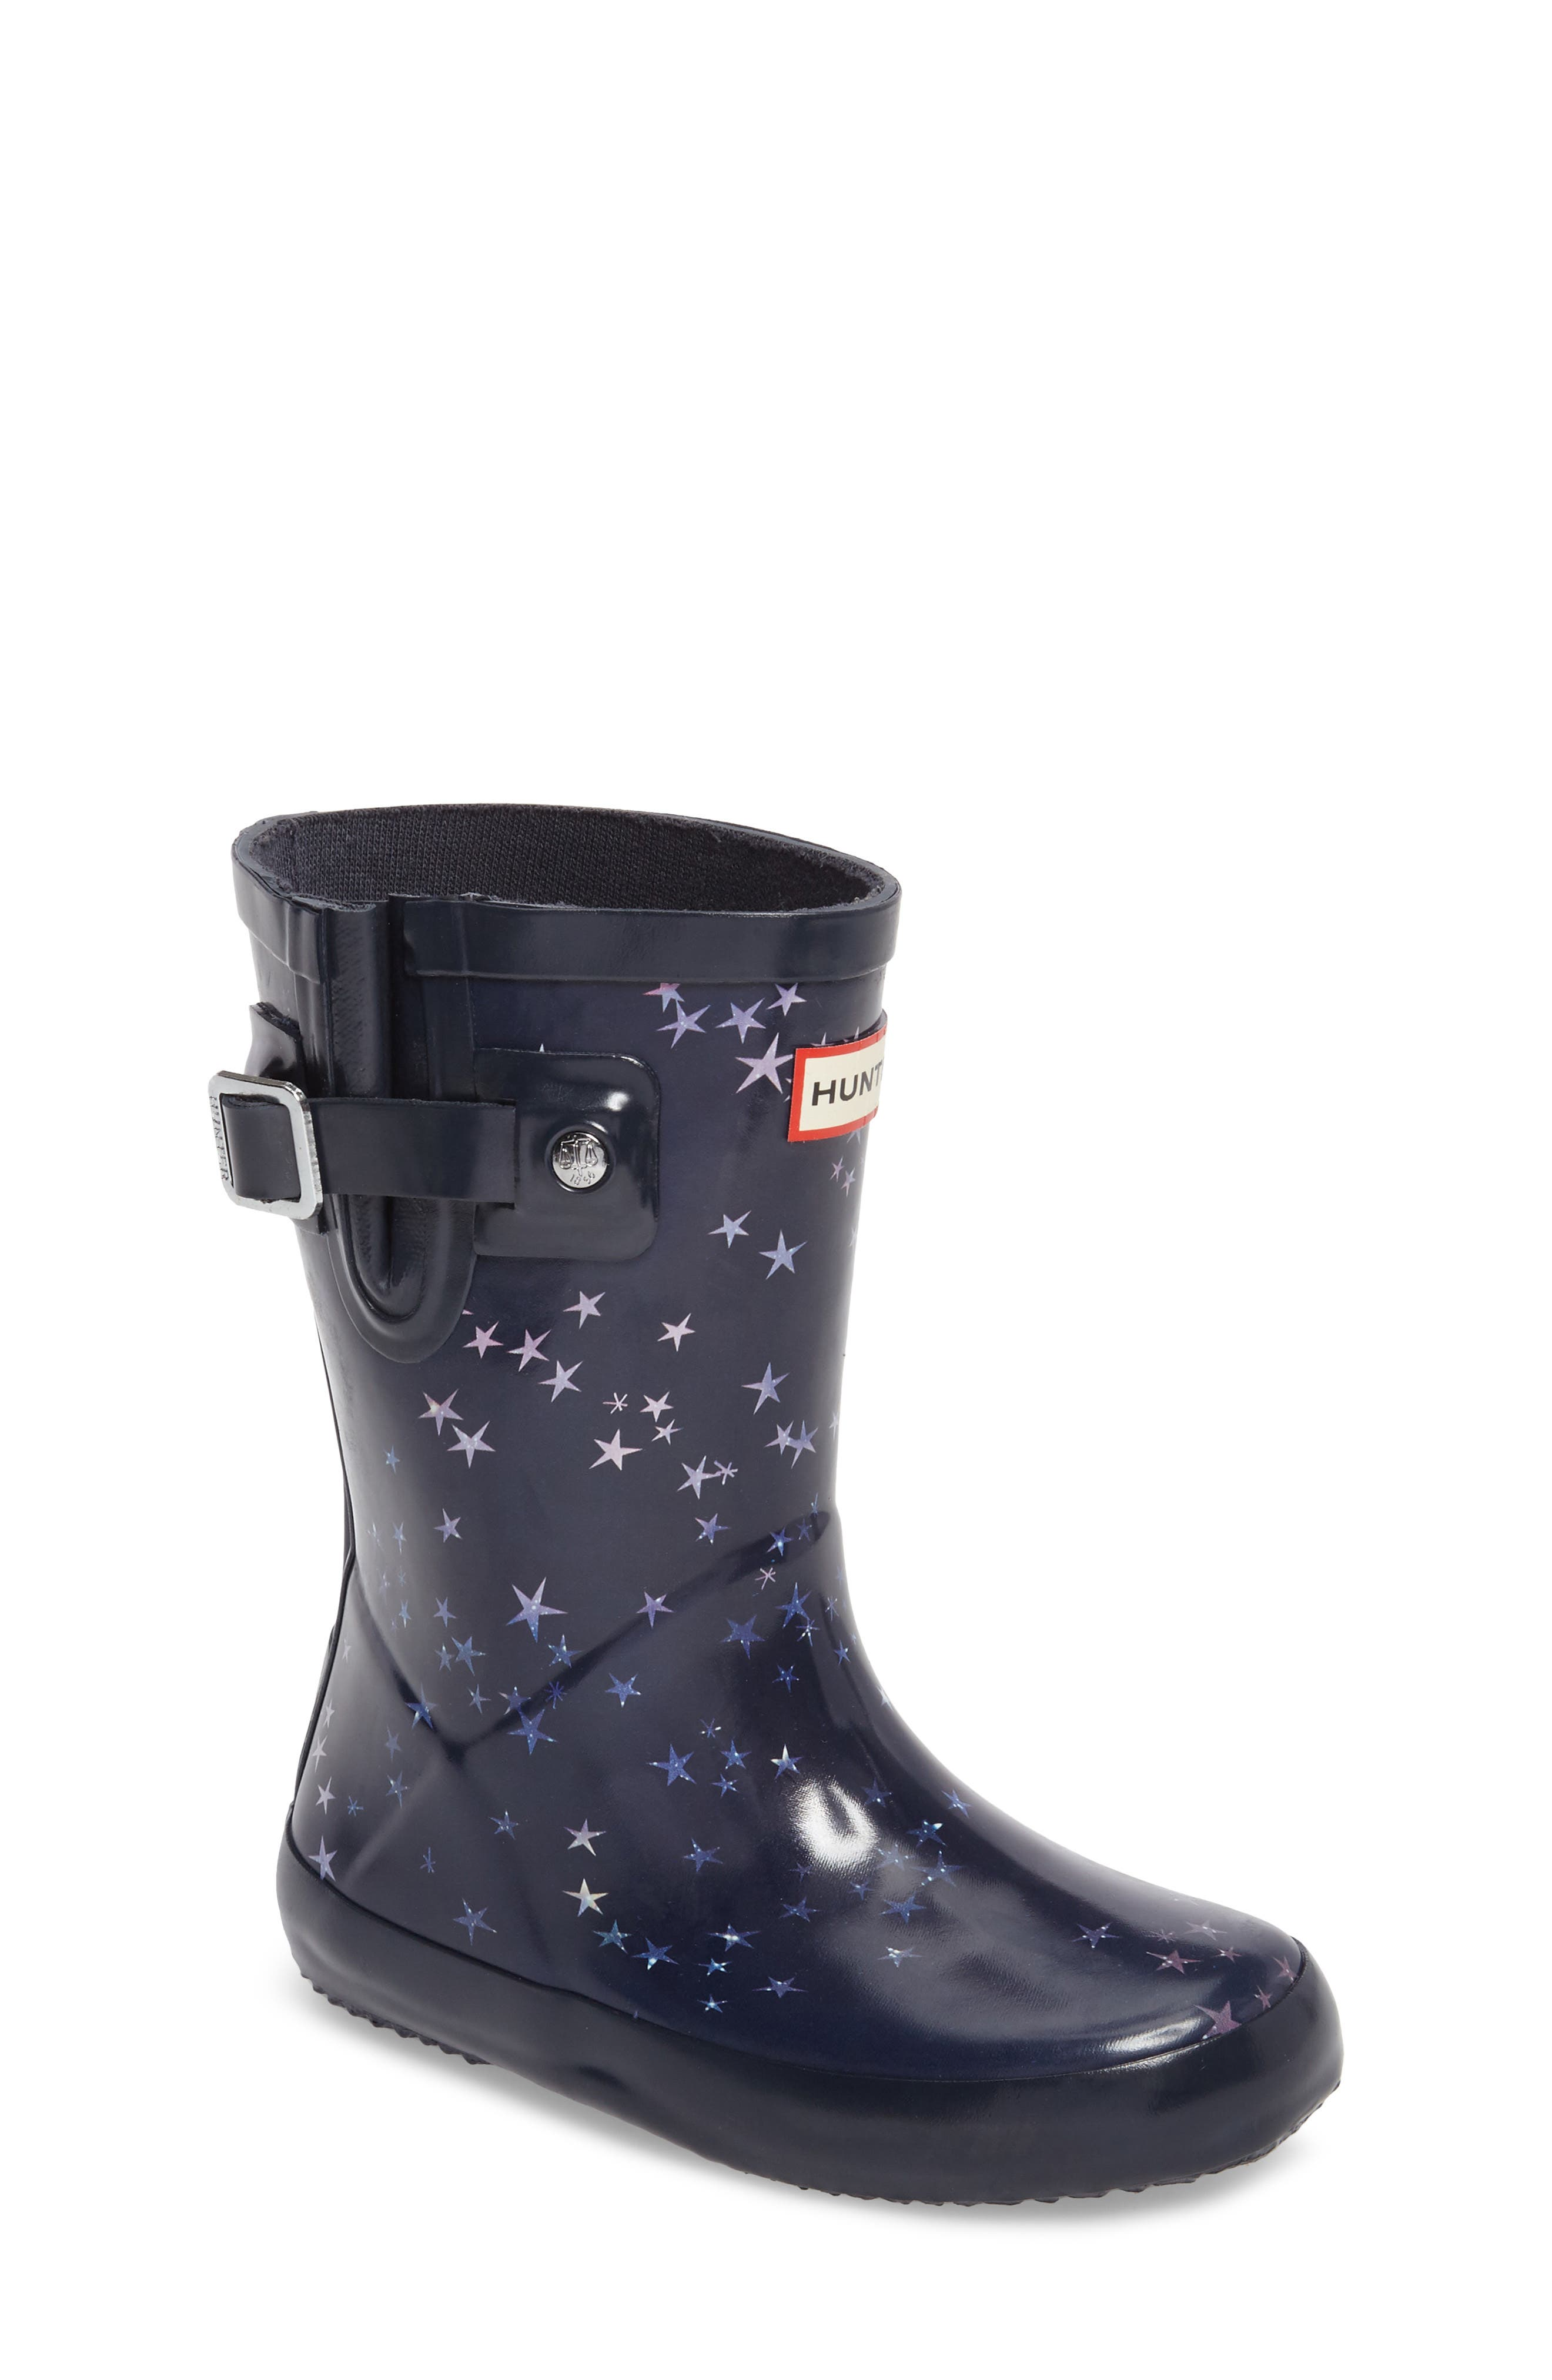 Flat Sole Constellation Waterproof Rain Boot,                         Main,                         color, 483